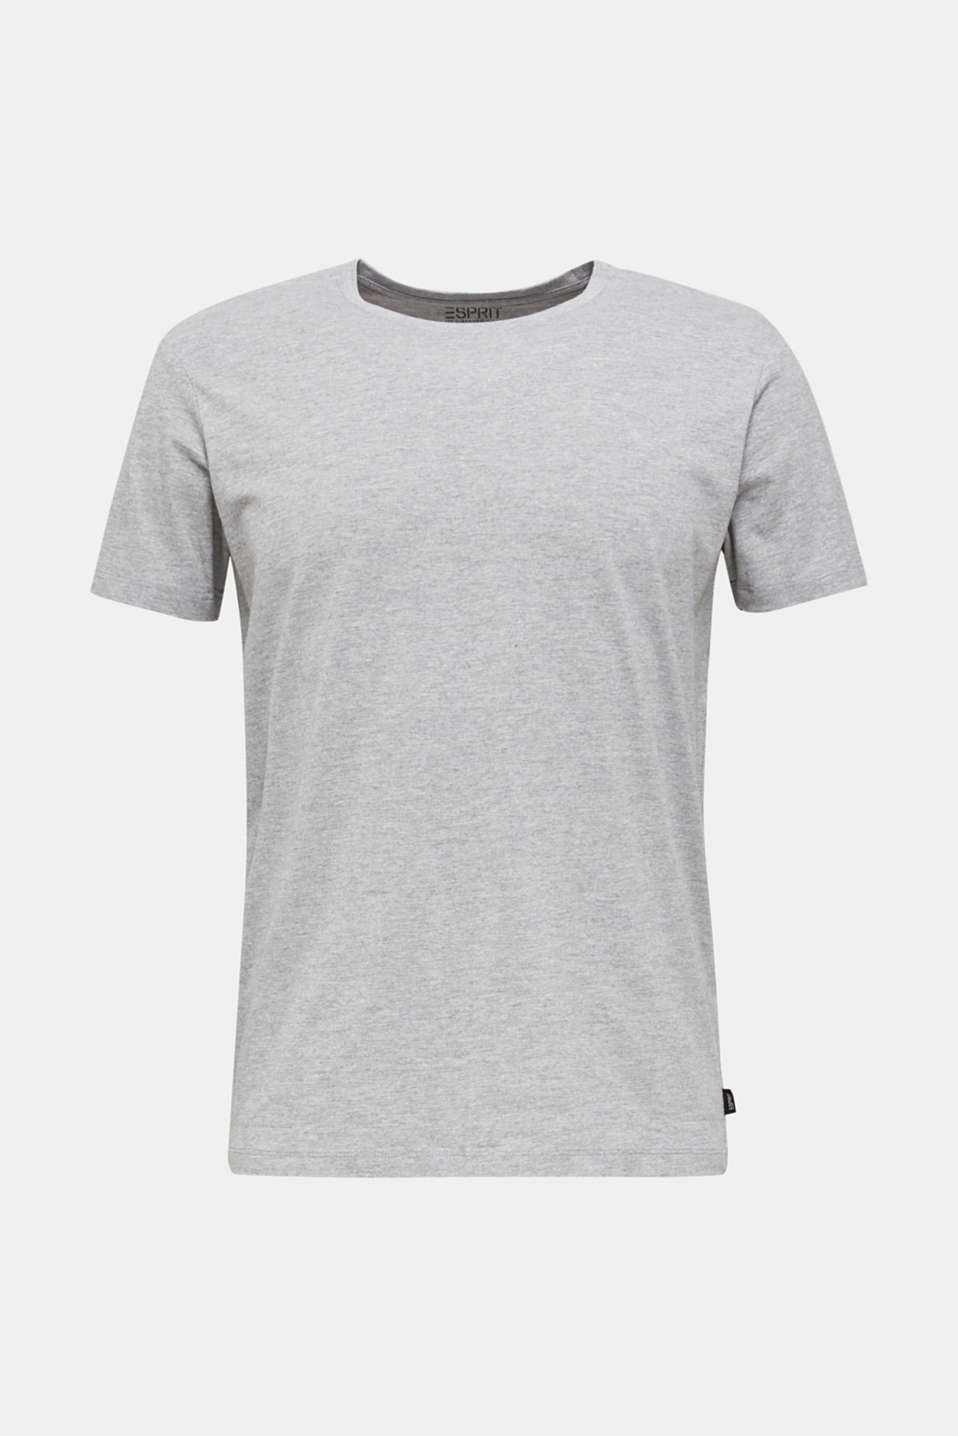 jersey T-shirt with a round neckline, MEDIUM GREY 5, detail image number 6